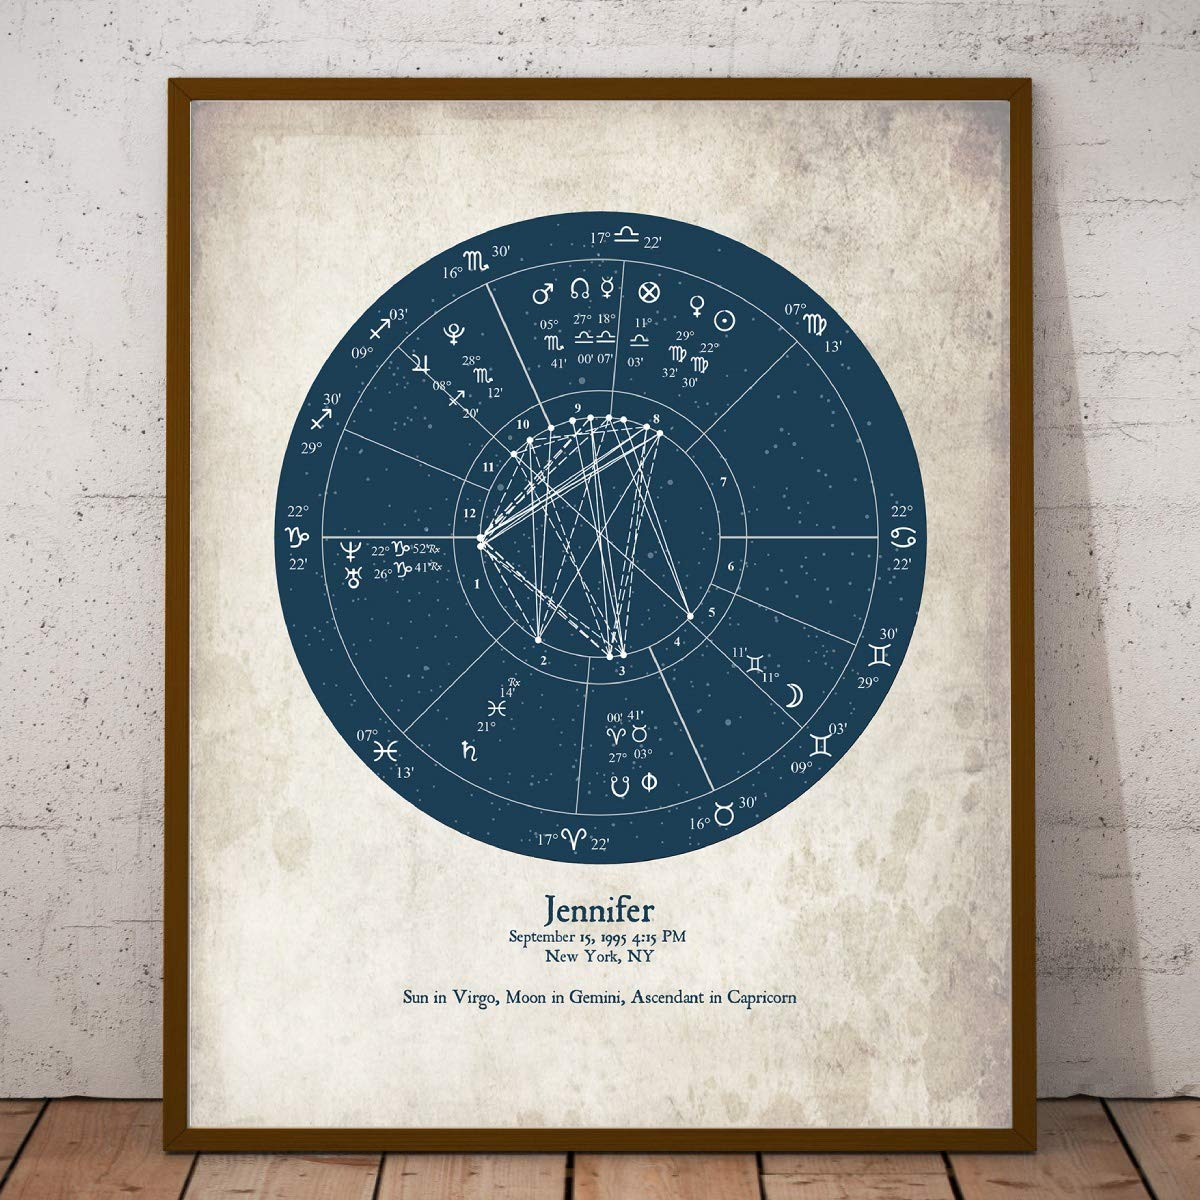 Amazon com: Personalized Astrological Birth Chart Print, Wall Decor